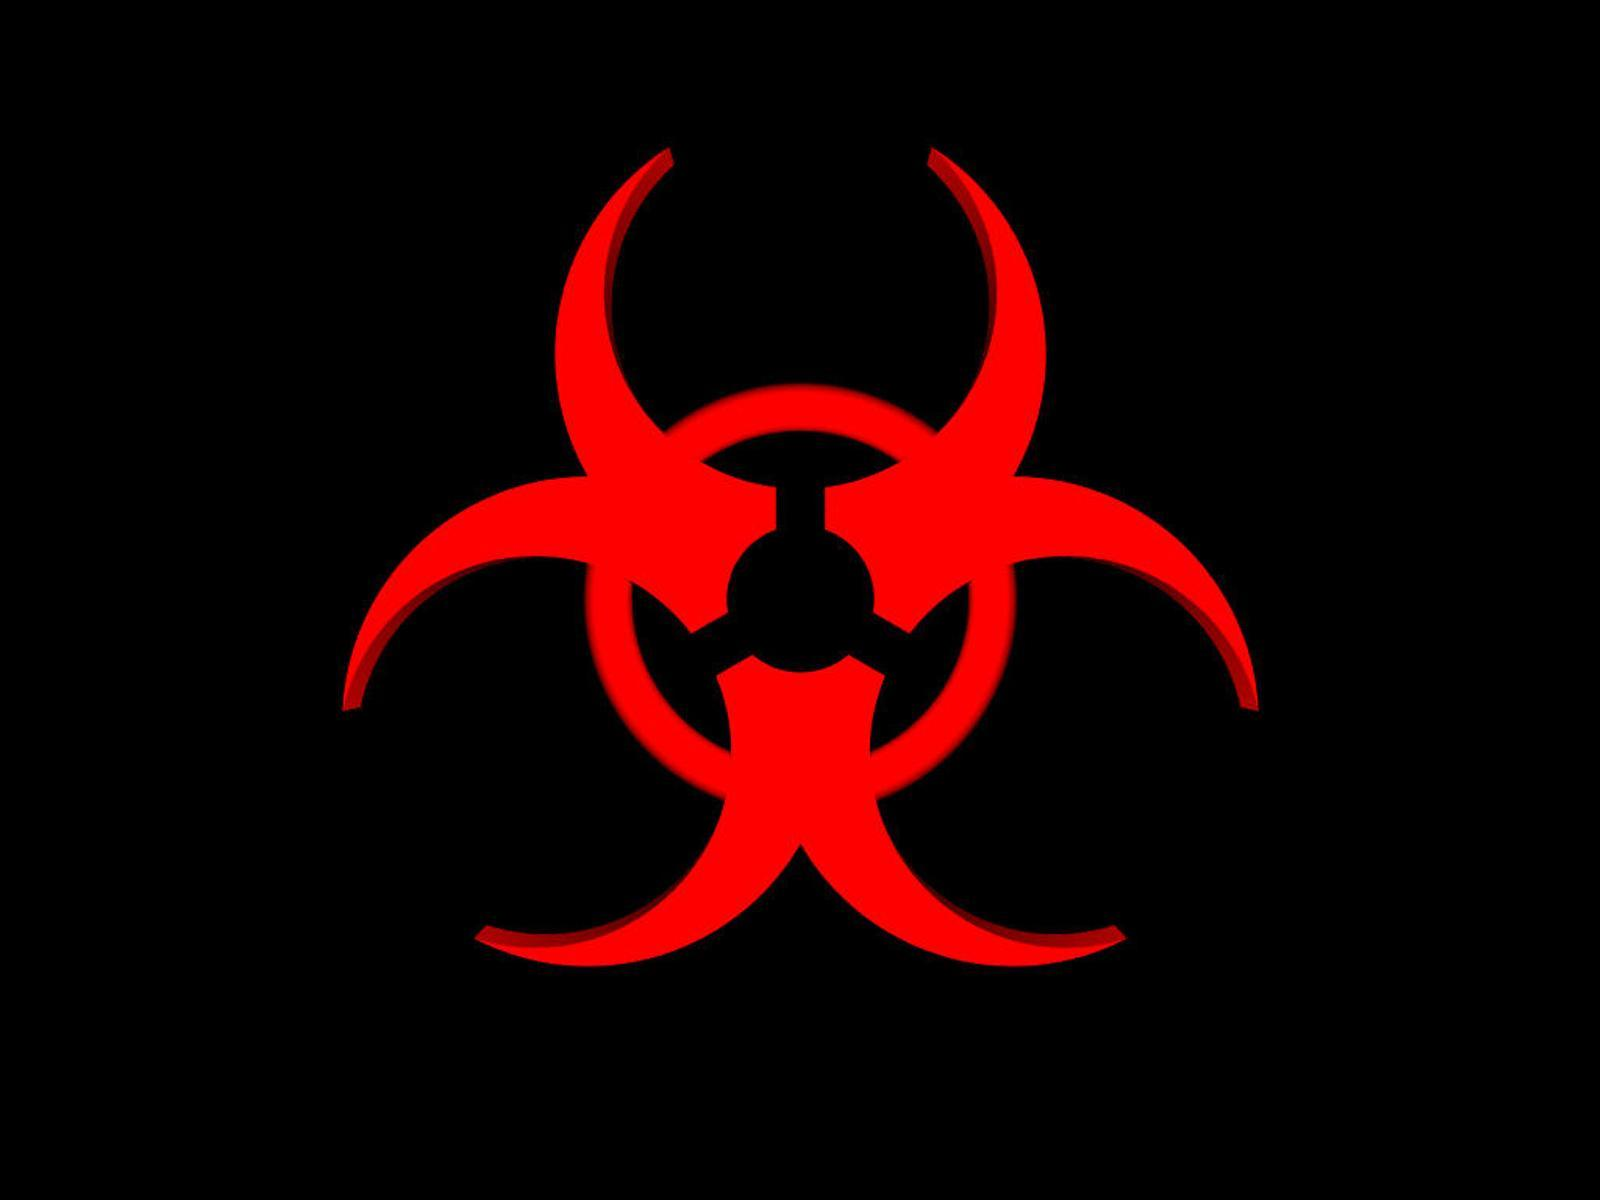 Biohazard symbol wallpapers wallpaper cave biohazard symbol pictures download wallpaper of biohazard biocorpaavc Image collections